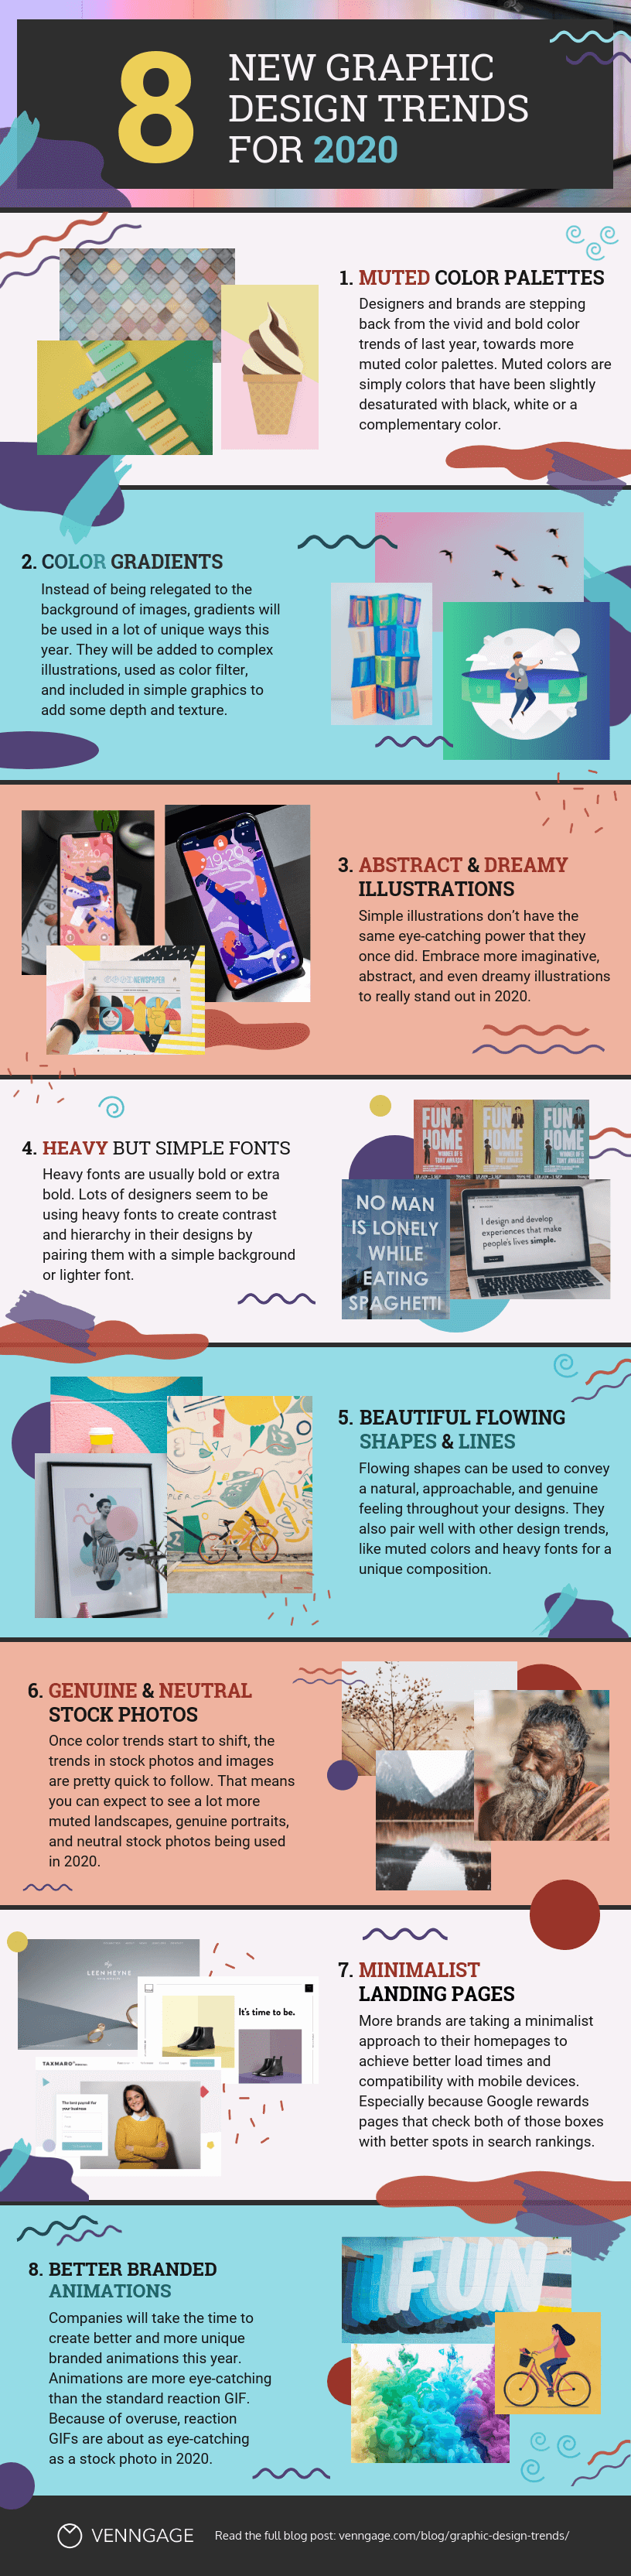 Graphic Design Trends 2020 Template